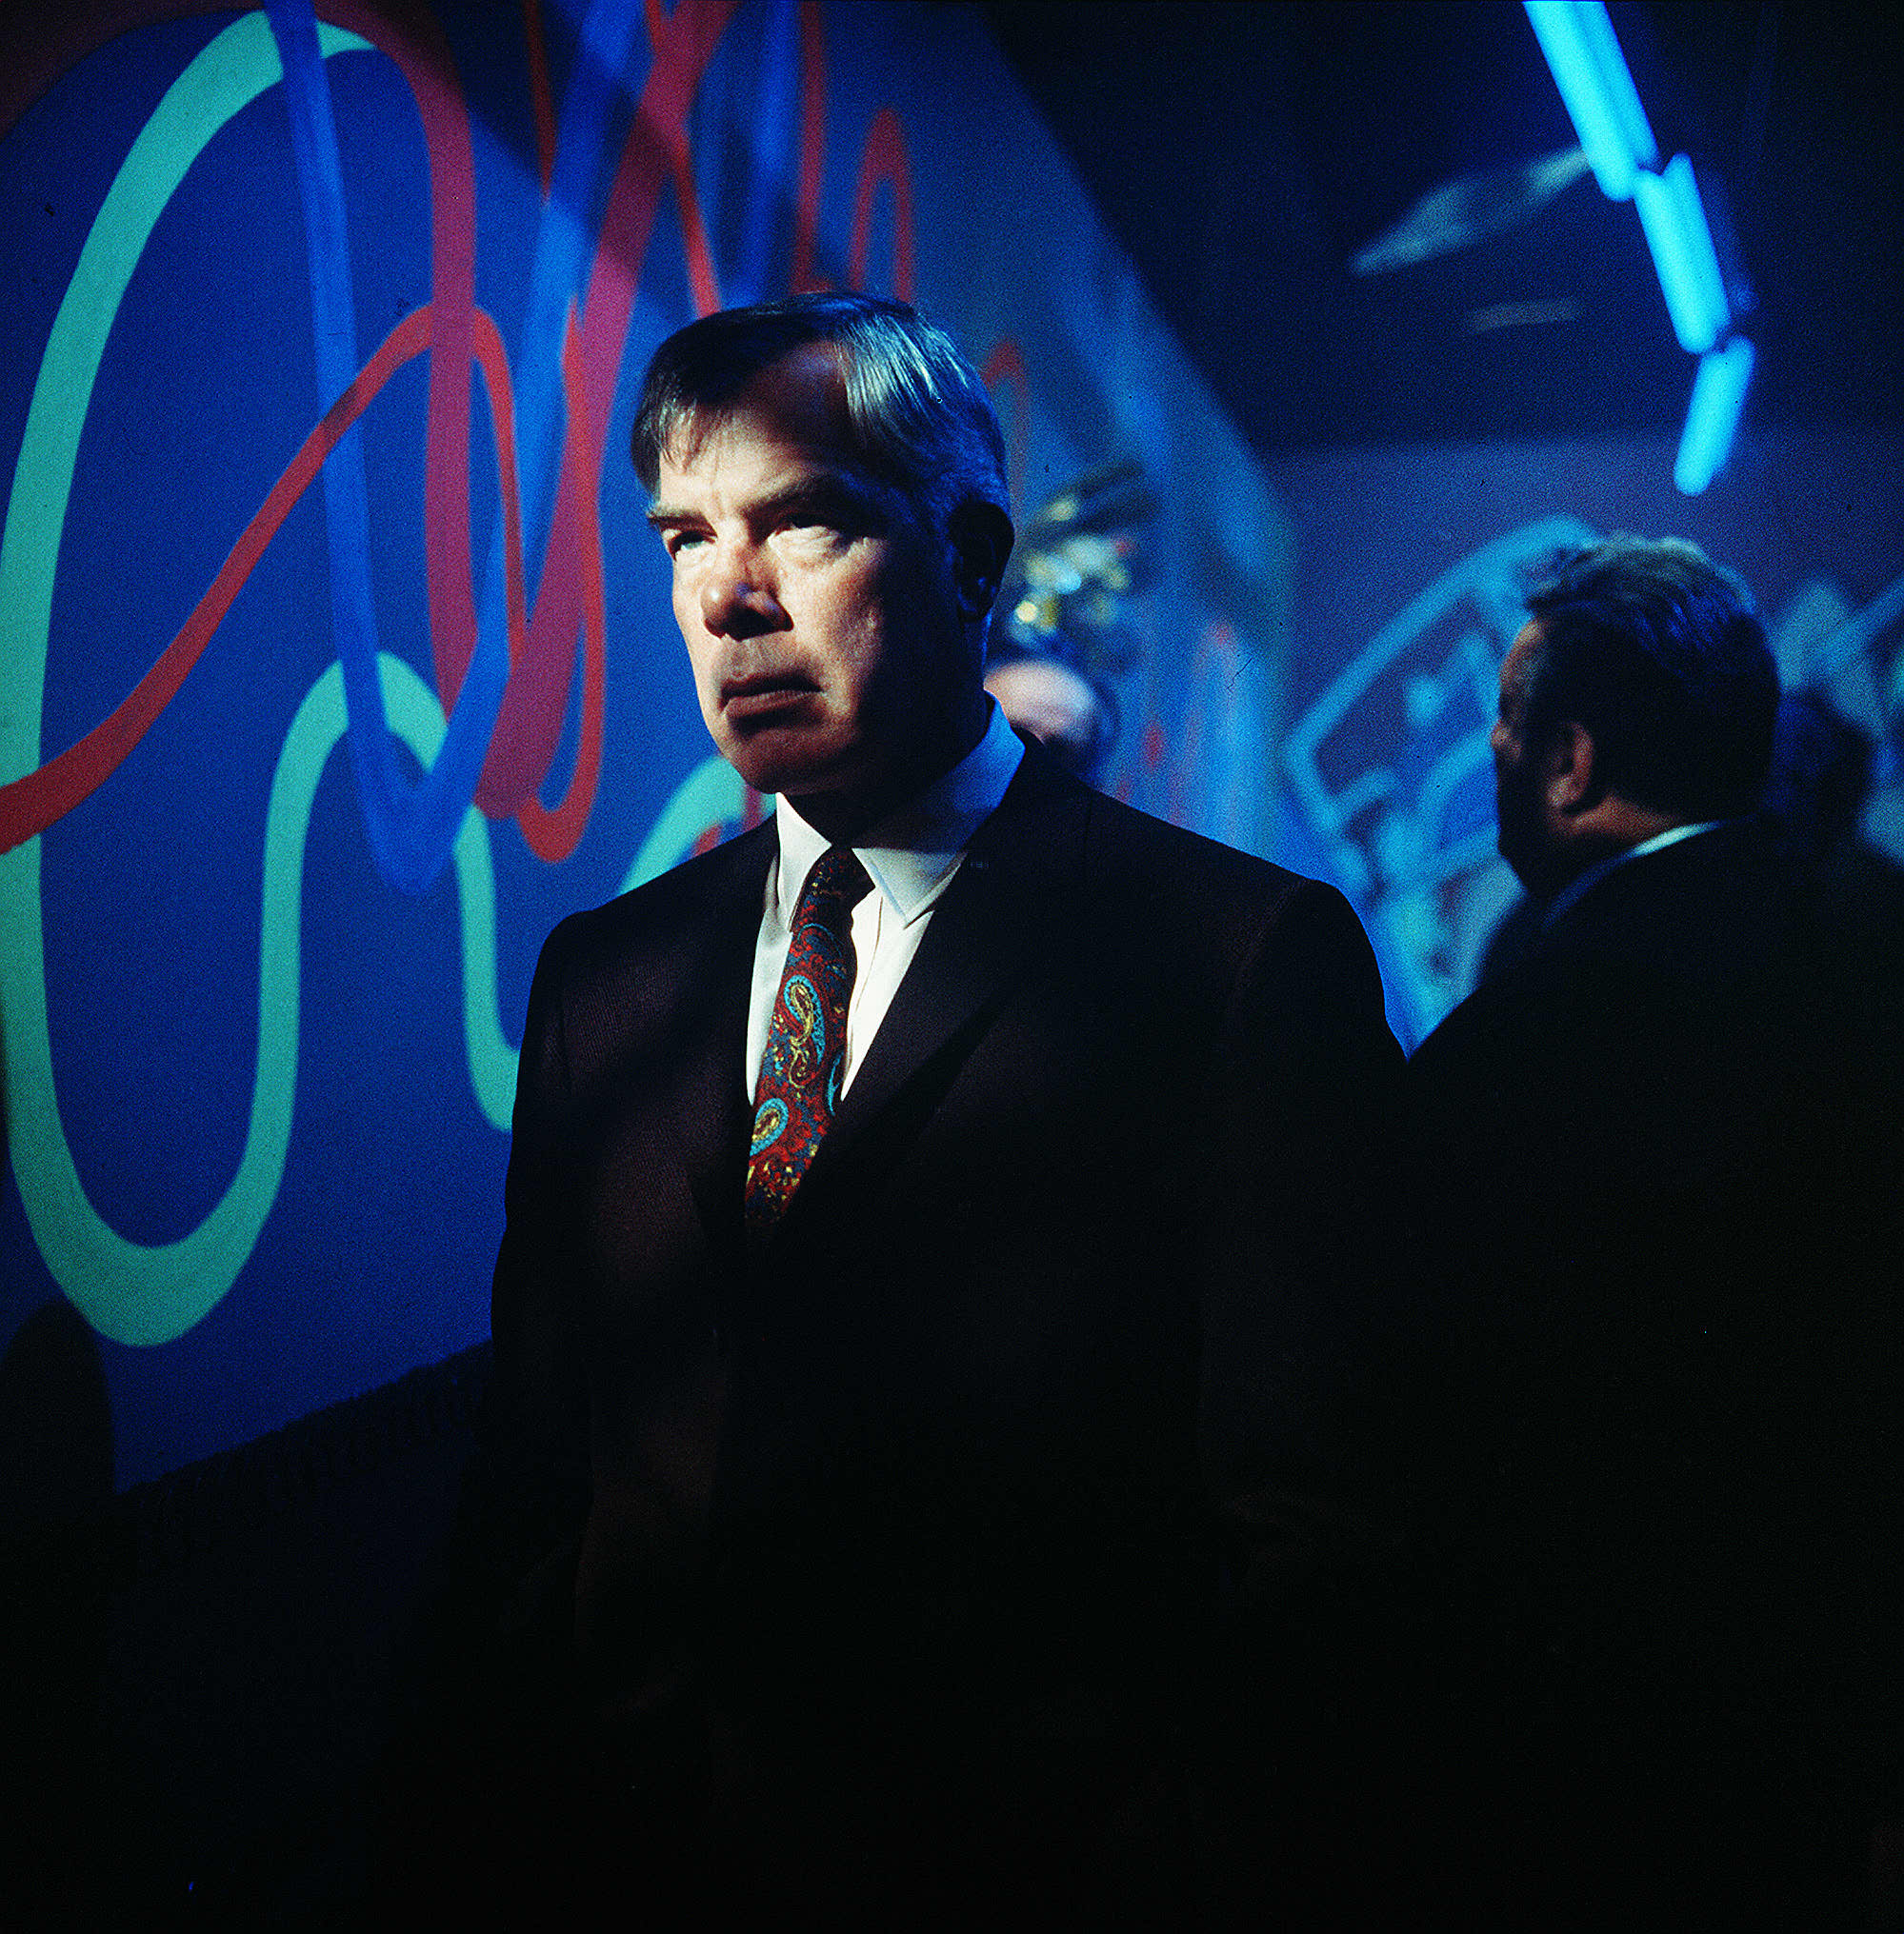 John Boorman's POINT BLANK starring Lee Marvin Credit: [ MGM / THE KOBAL COLLECTION ]